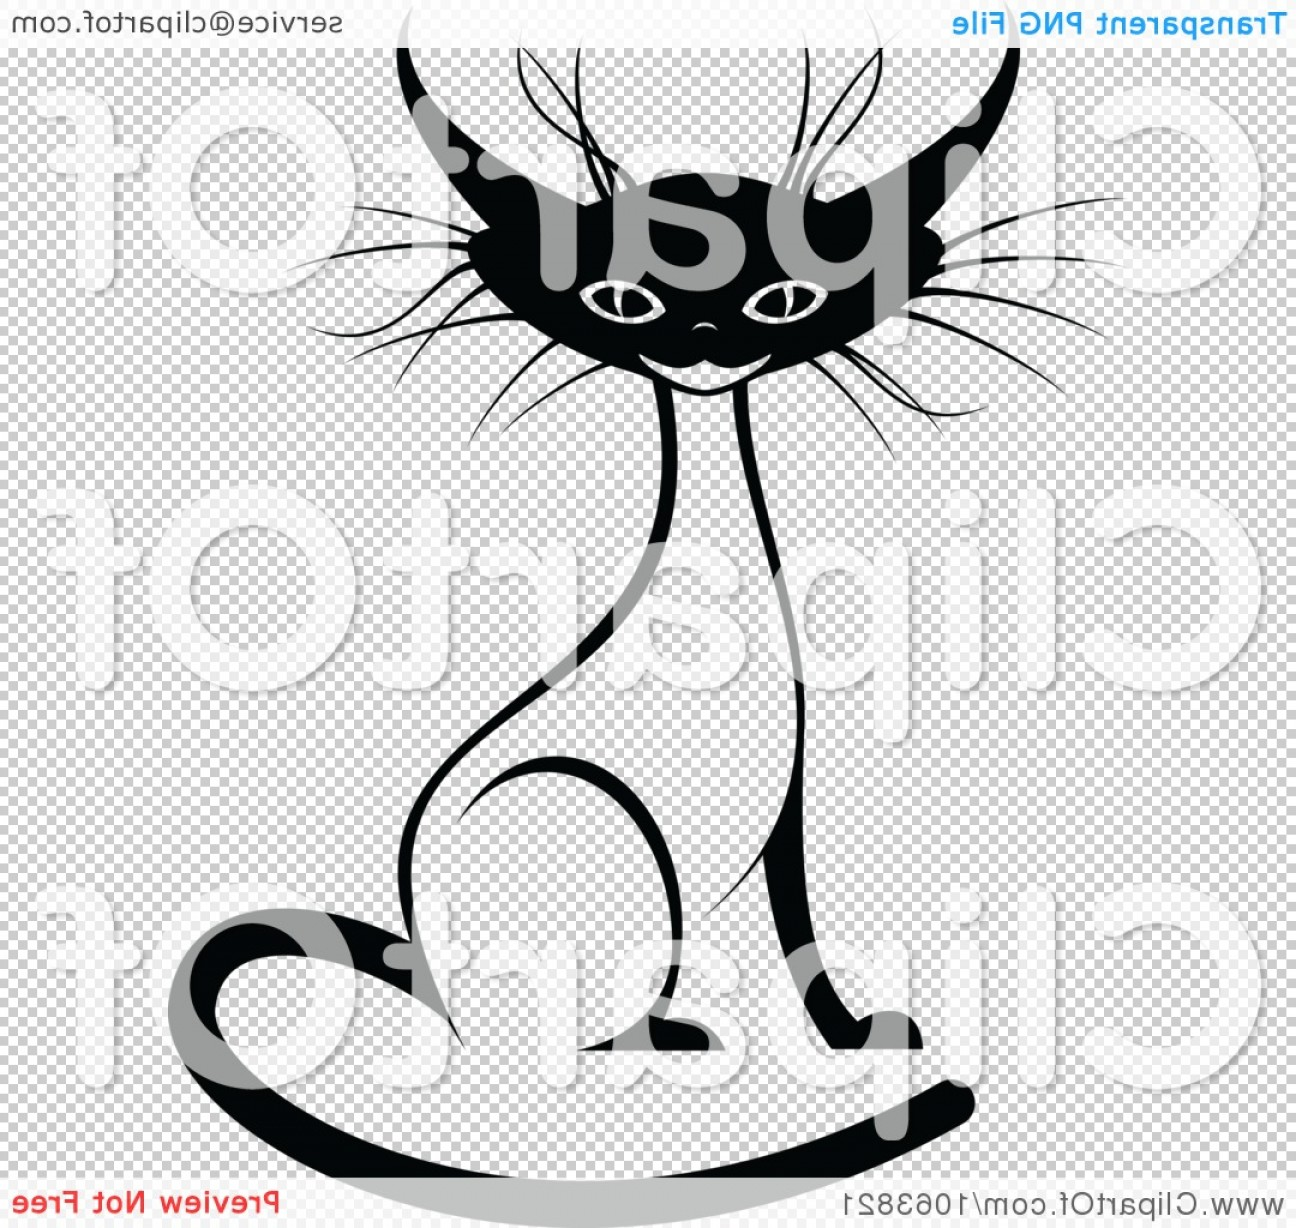 Siamese Cat Vector Transparent Background: Sitting Siamese Cat Black And White